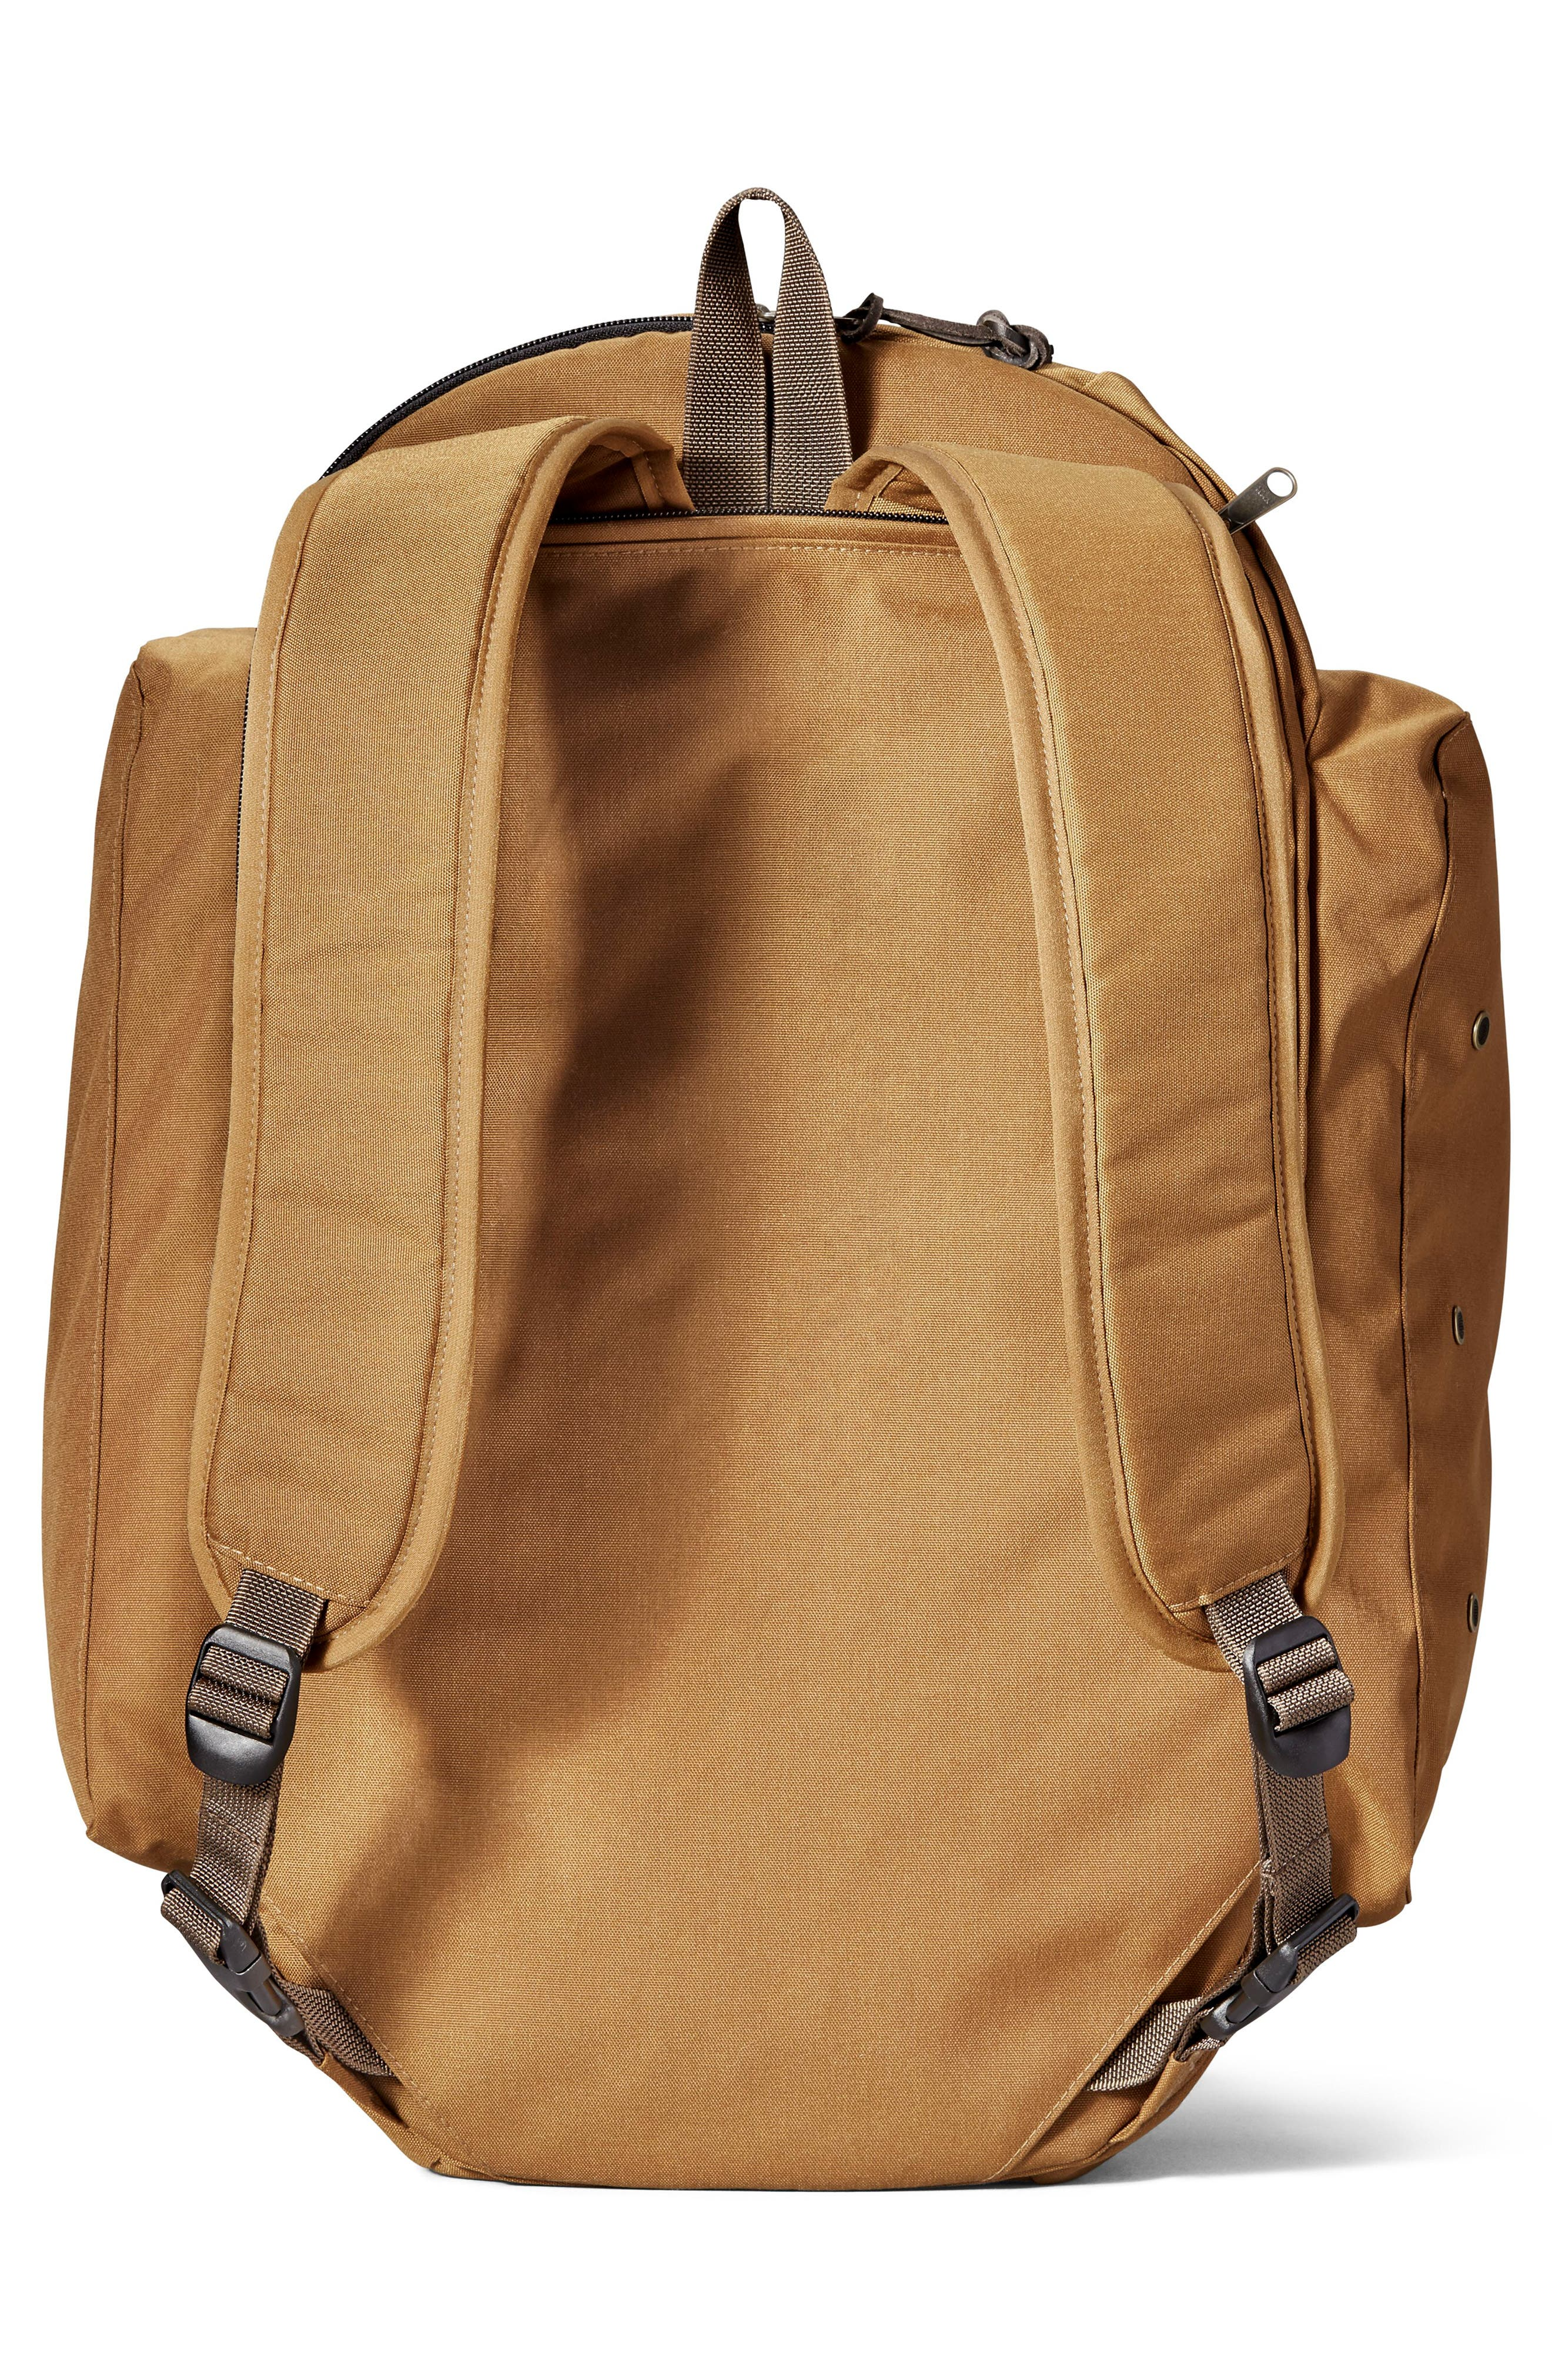 Convertible Duffel Bag,                             Alternate thumbnail 2, color,                             WHISKEY